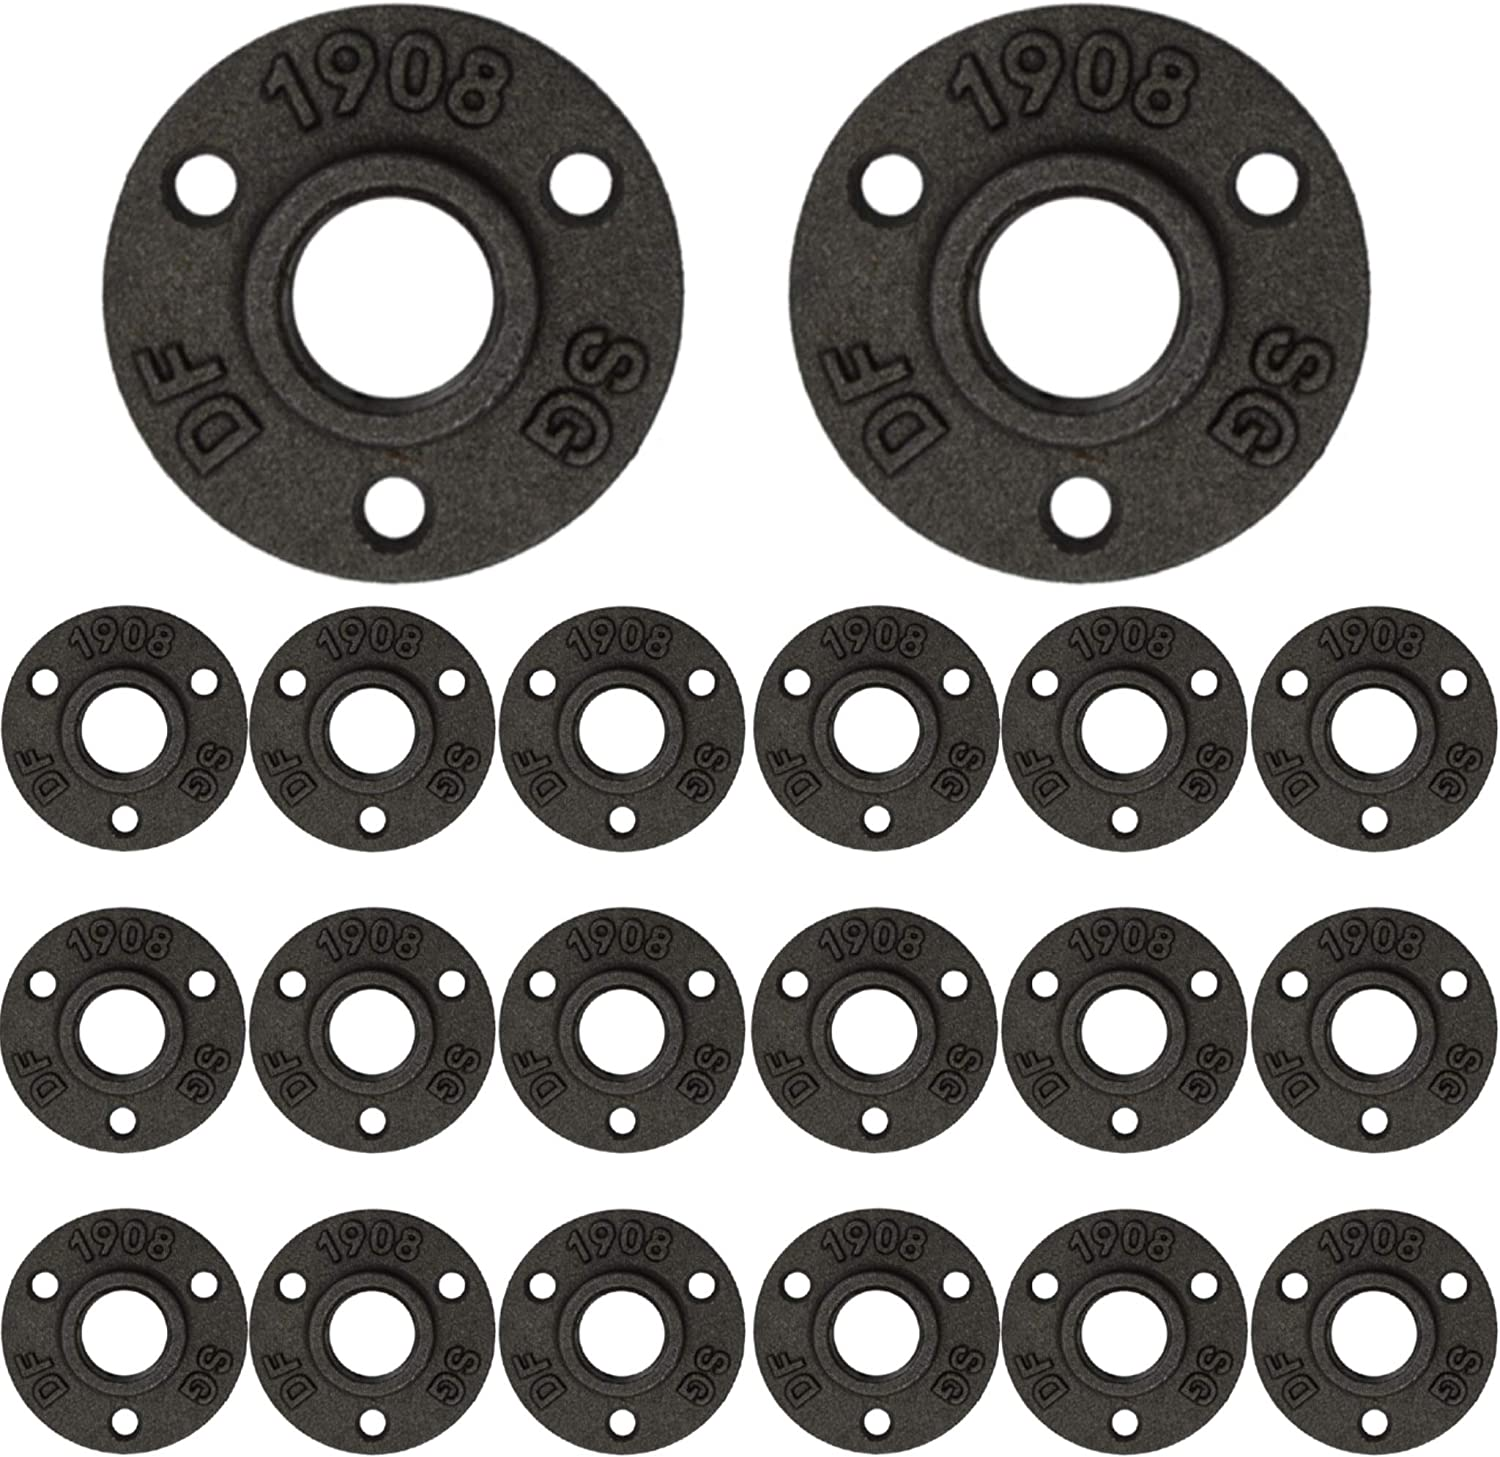 Brooklyn Pipe Flange - 20 Pack 1/2 Inch Floor Flange Cast Iron Pipe Fittings 1/2 Inch Flange Industrial Pipe Flanges Decorative Pipe Fitting Fit for Steampunk Furniture